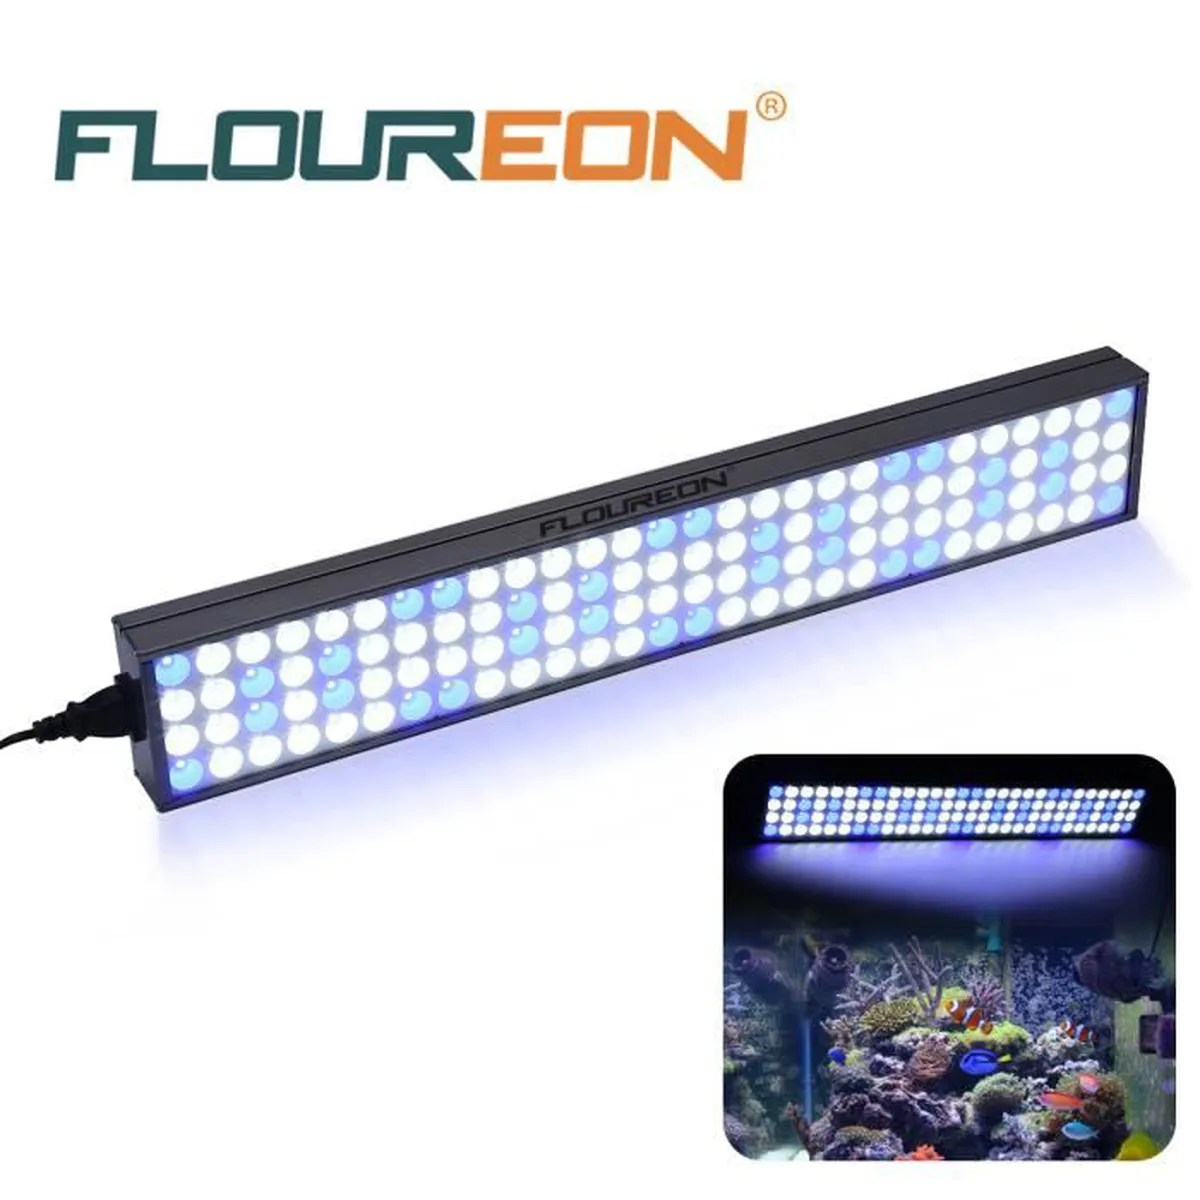 Vente Eclairage Led Floureon 60w 25 112pcs Led Aquarium Lampe Eclairage